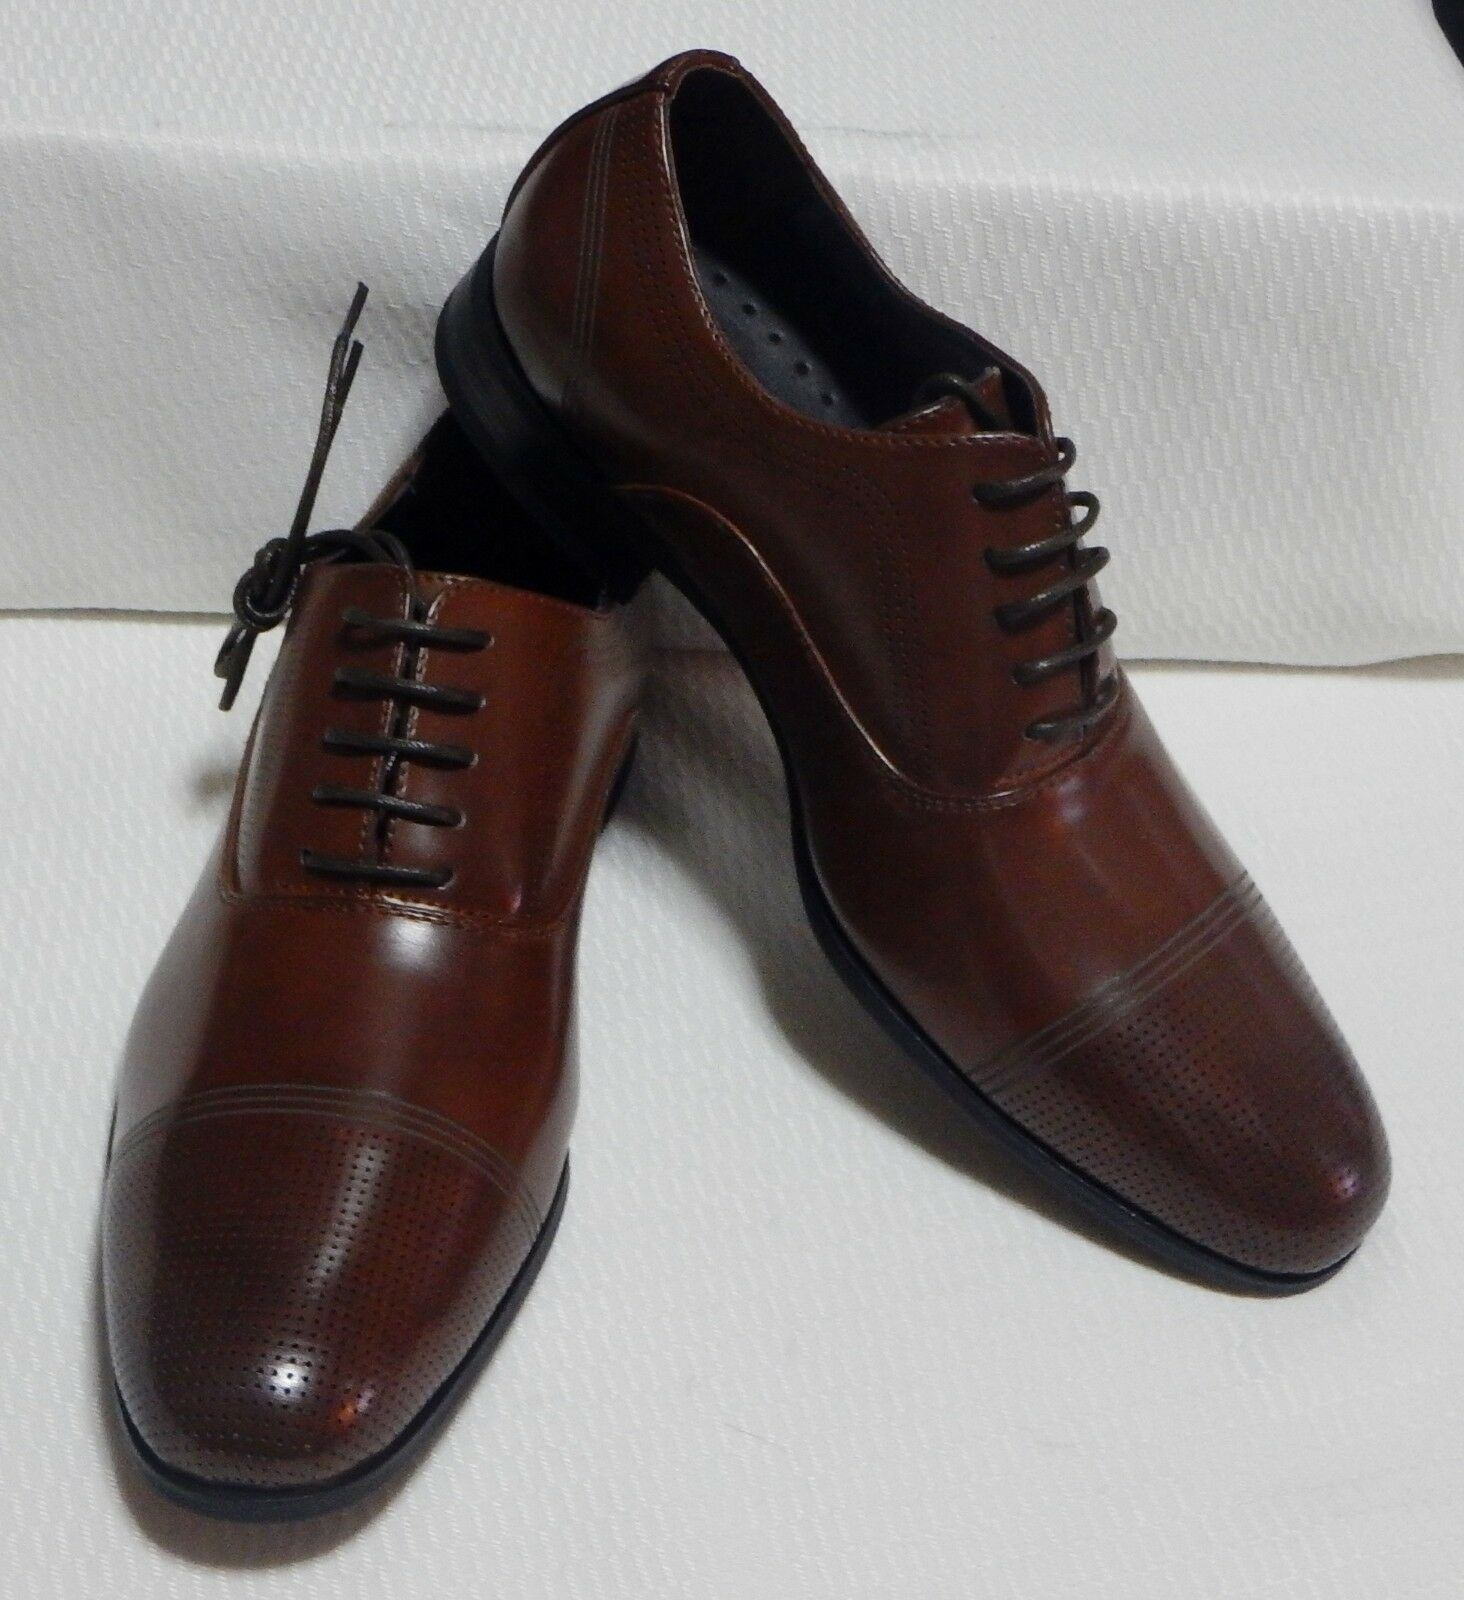 KENNETH COLE CAP TOE OXFORD( COGNAC ) NEW WITH  BOX SIZE 7.5 M  WITH # 0231 46ef33